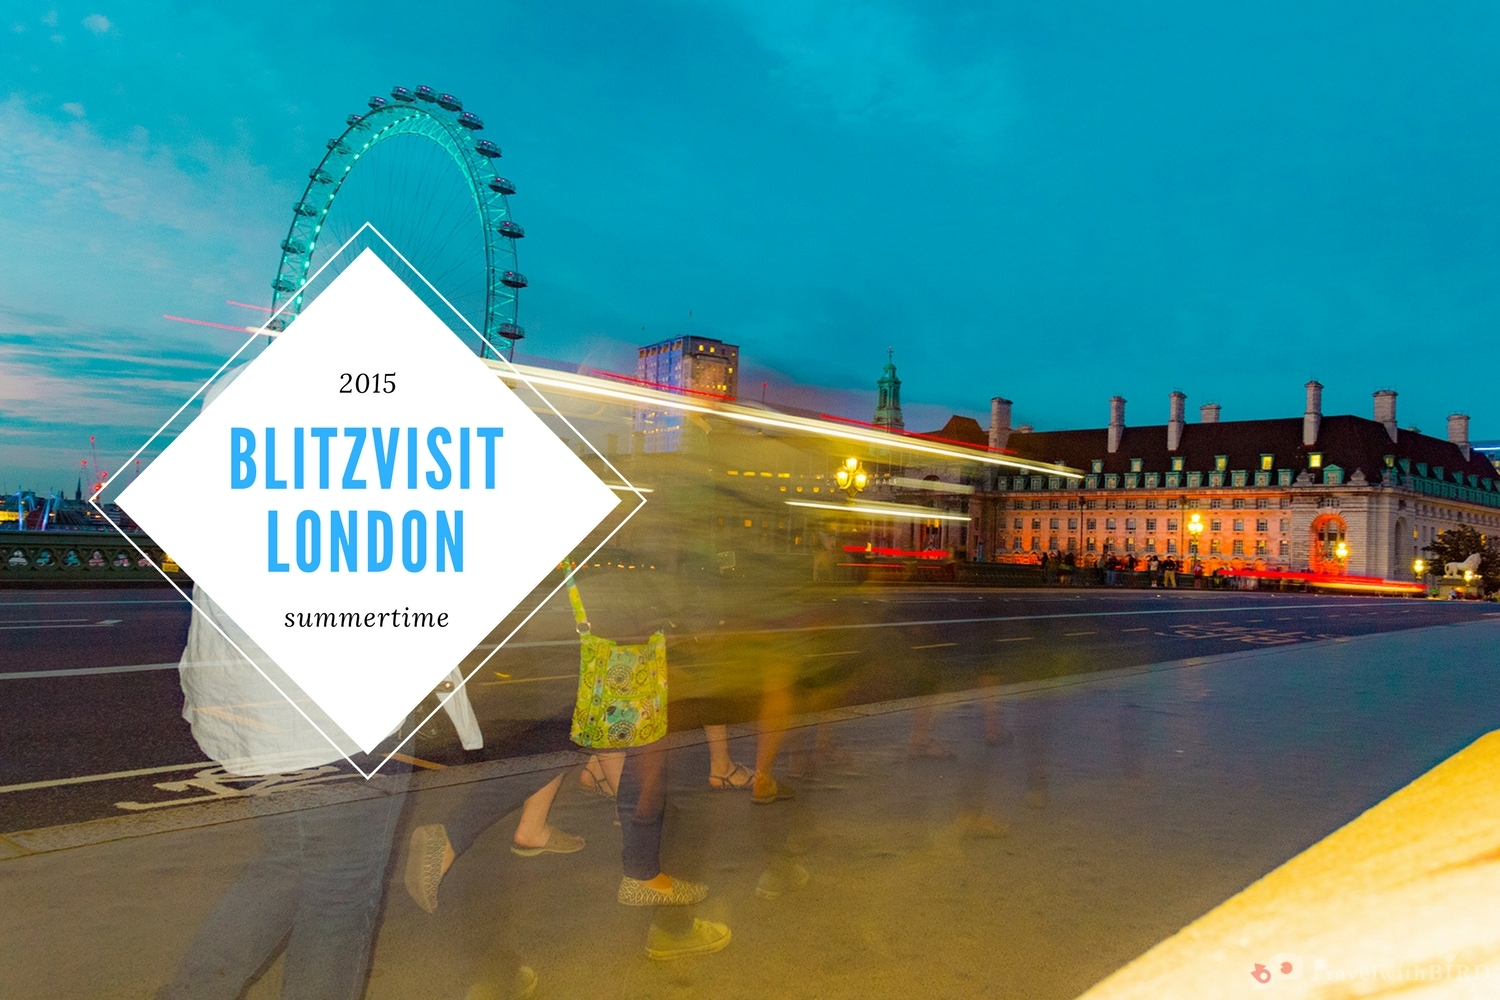 Blitzvisit London – Summertime with Big Ben & Oxford Street